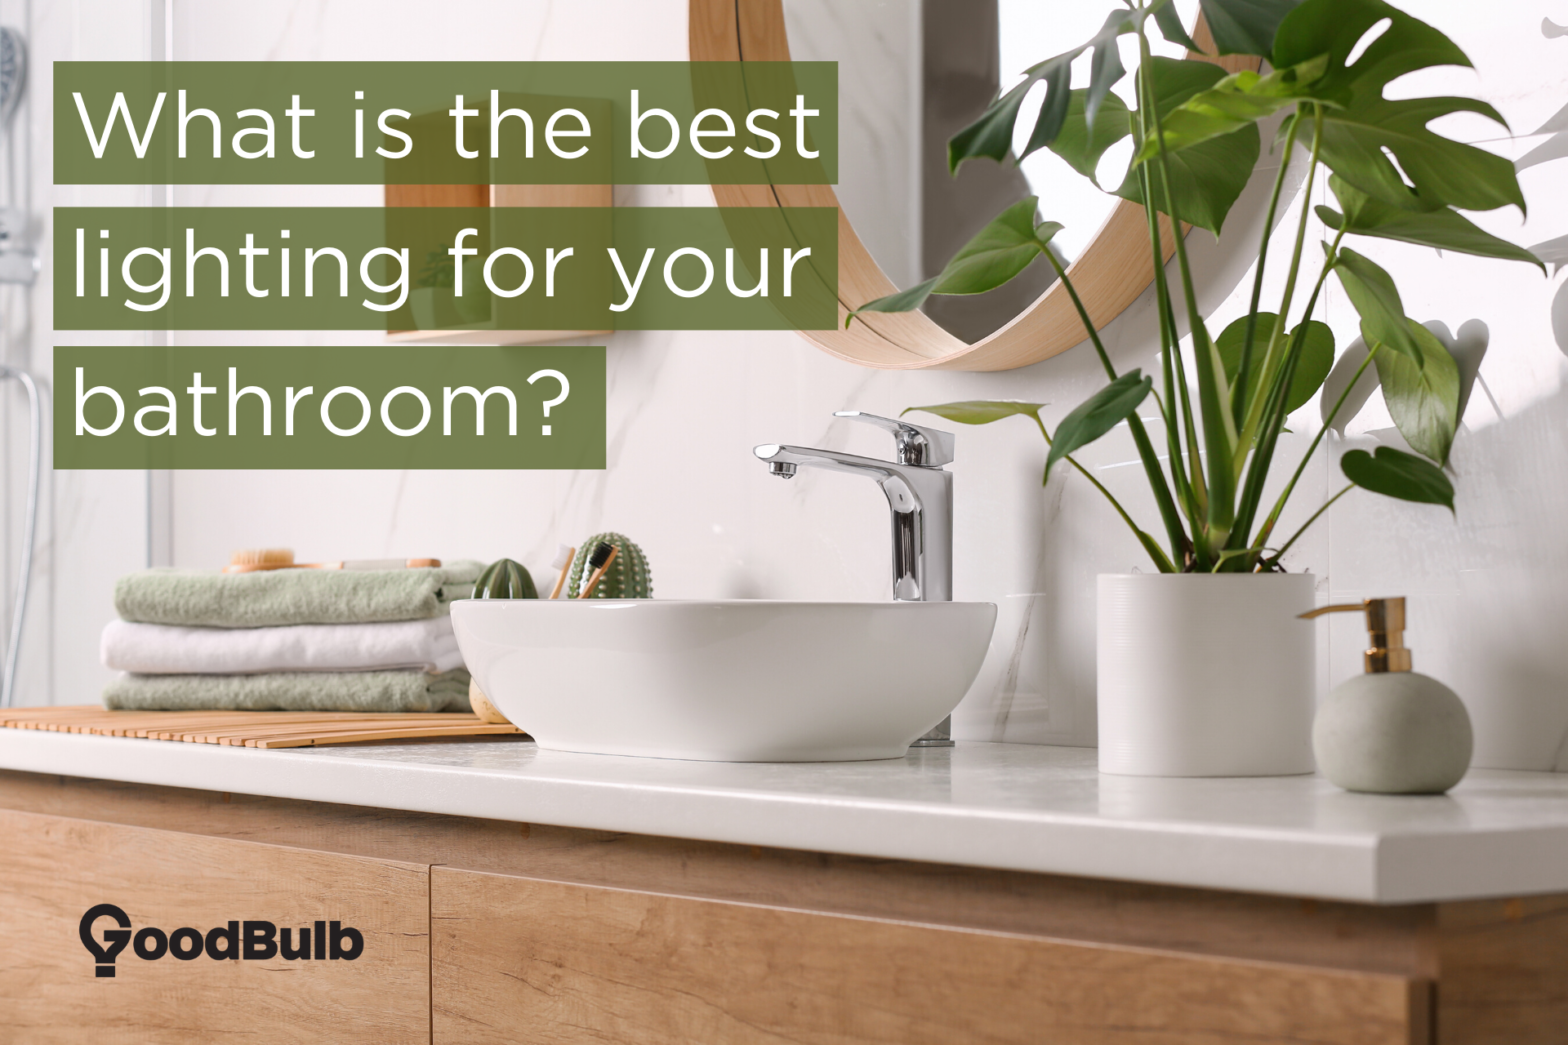 """A bathroom vanity with a green plant next to the sink, and a title reading """"What is the best lighting for your bathroom?"""""""